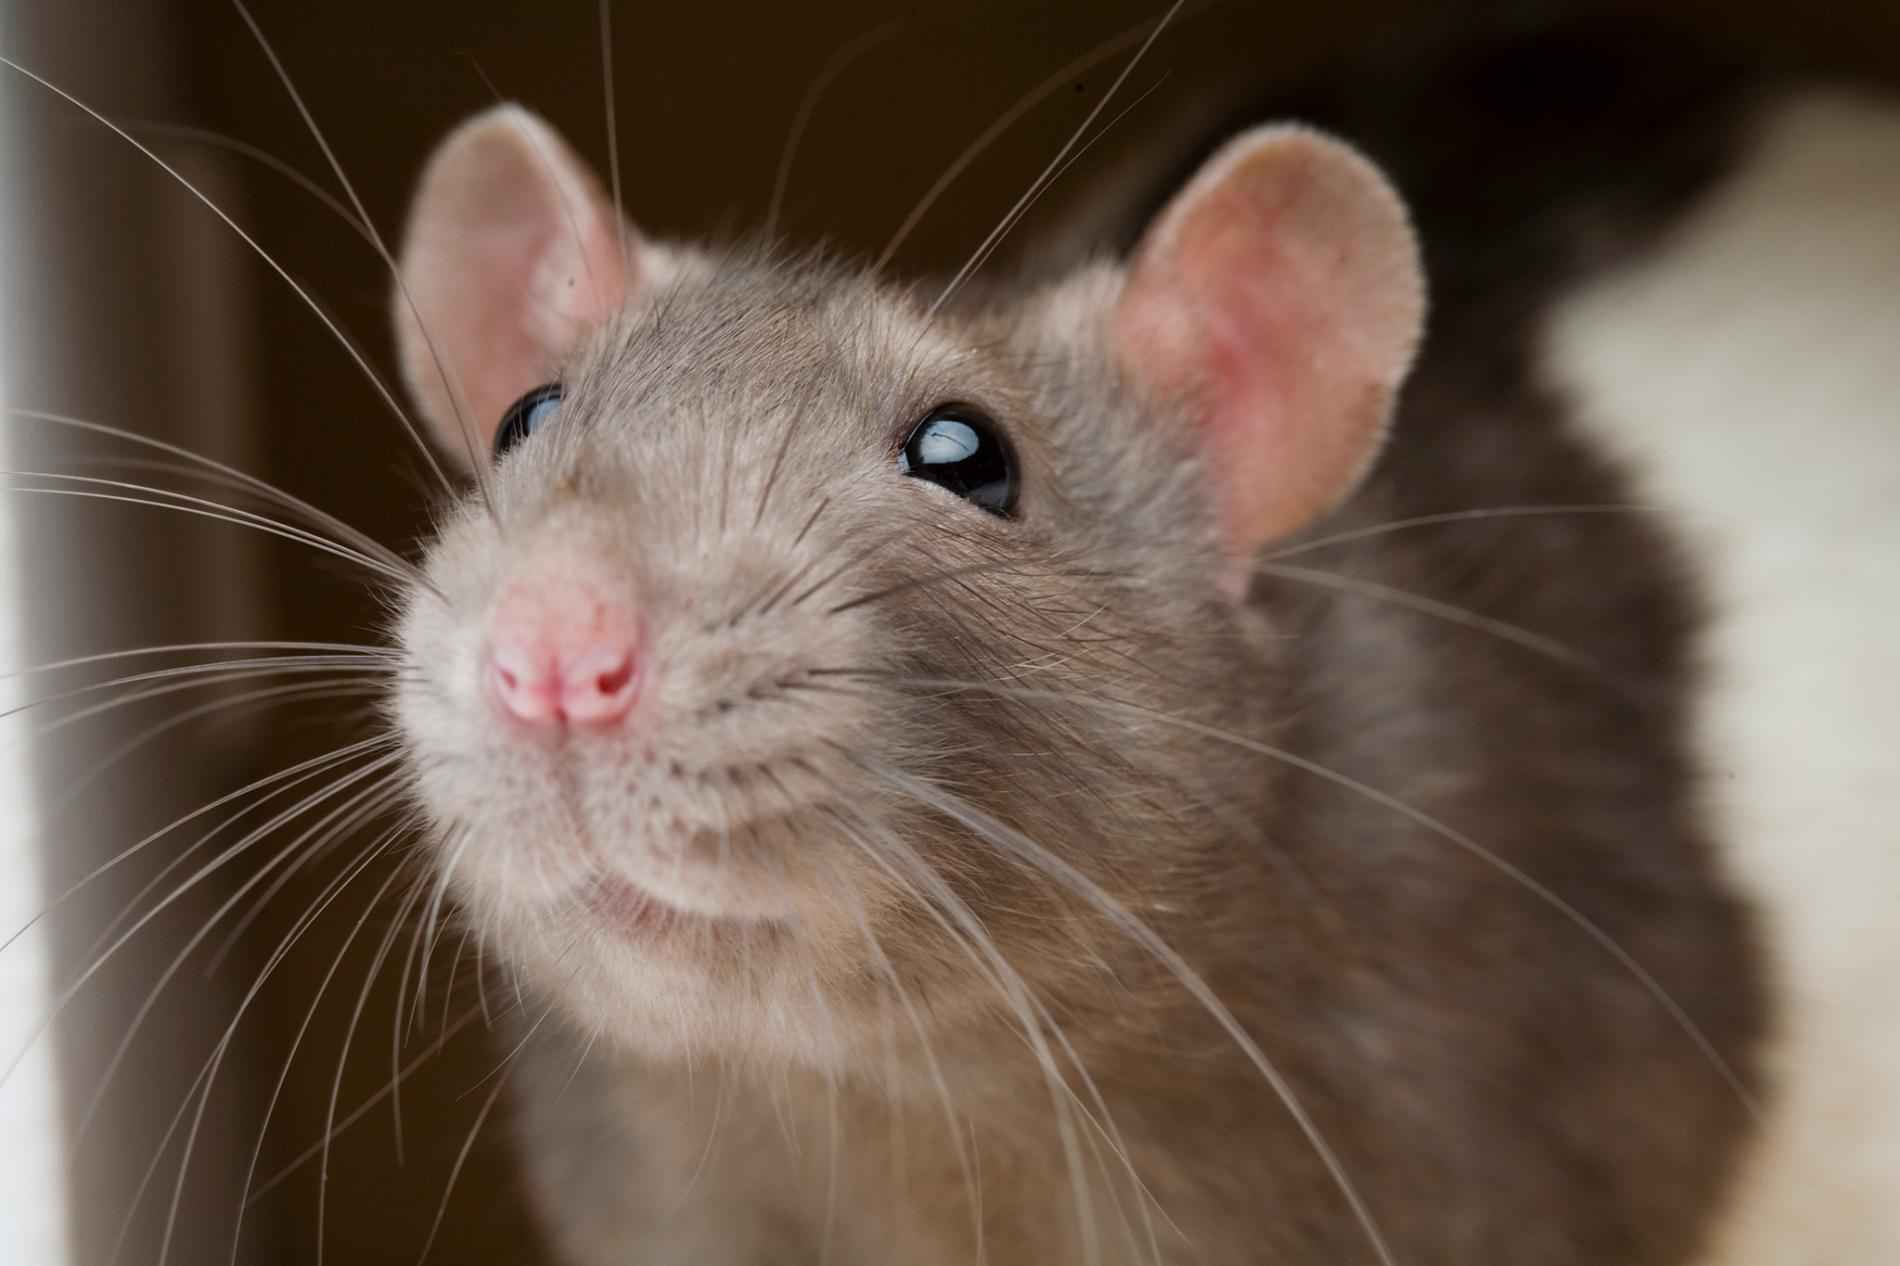 Promoting Good Behavior in Rats